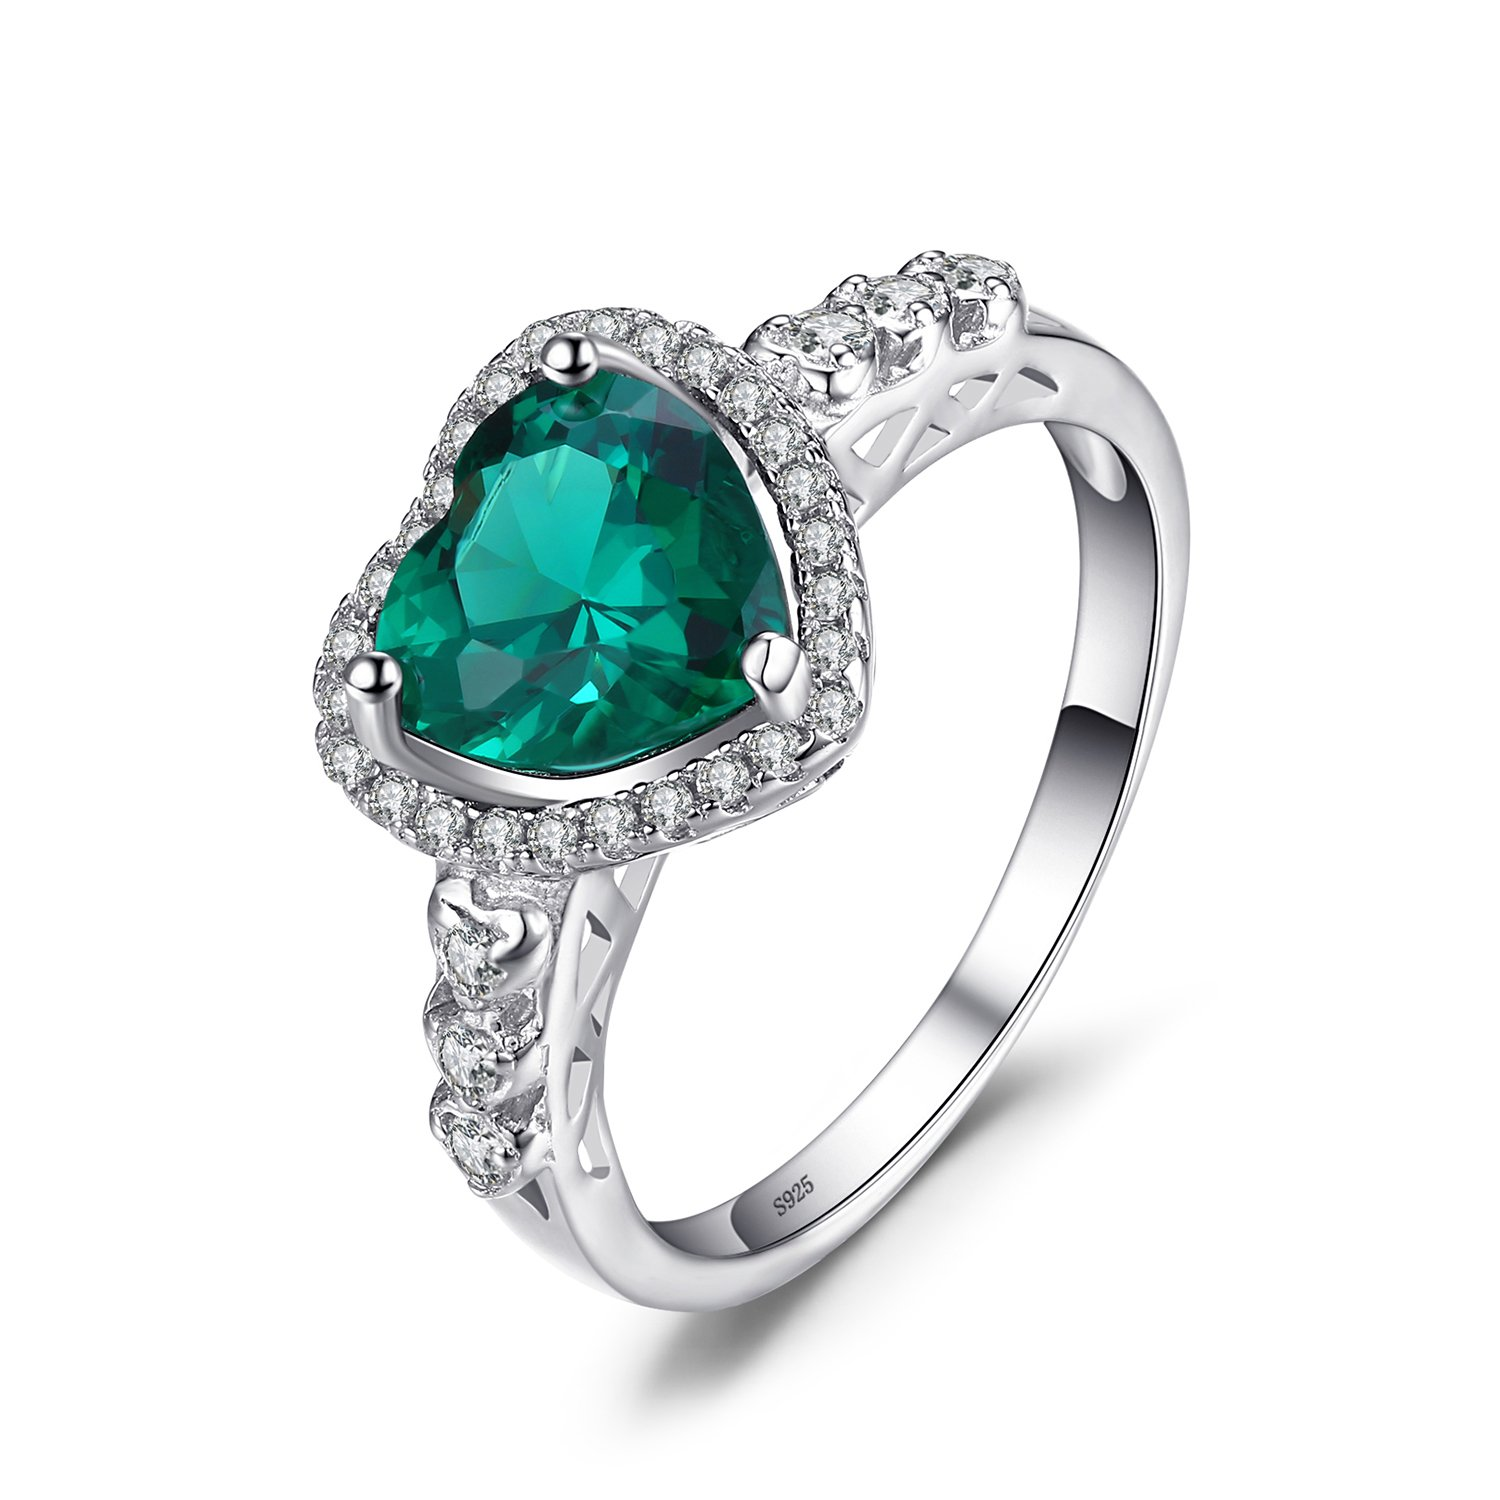 JewelryPalace Heart Of Ocean 1.8ct Nano Russian Simulated Emerald Love Forever Halo Promise Ring 925 Sterling Silver 800266SCJR